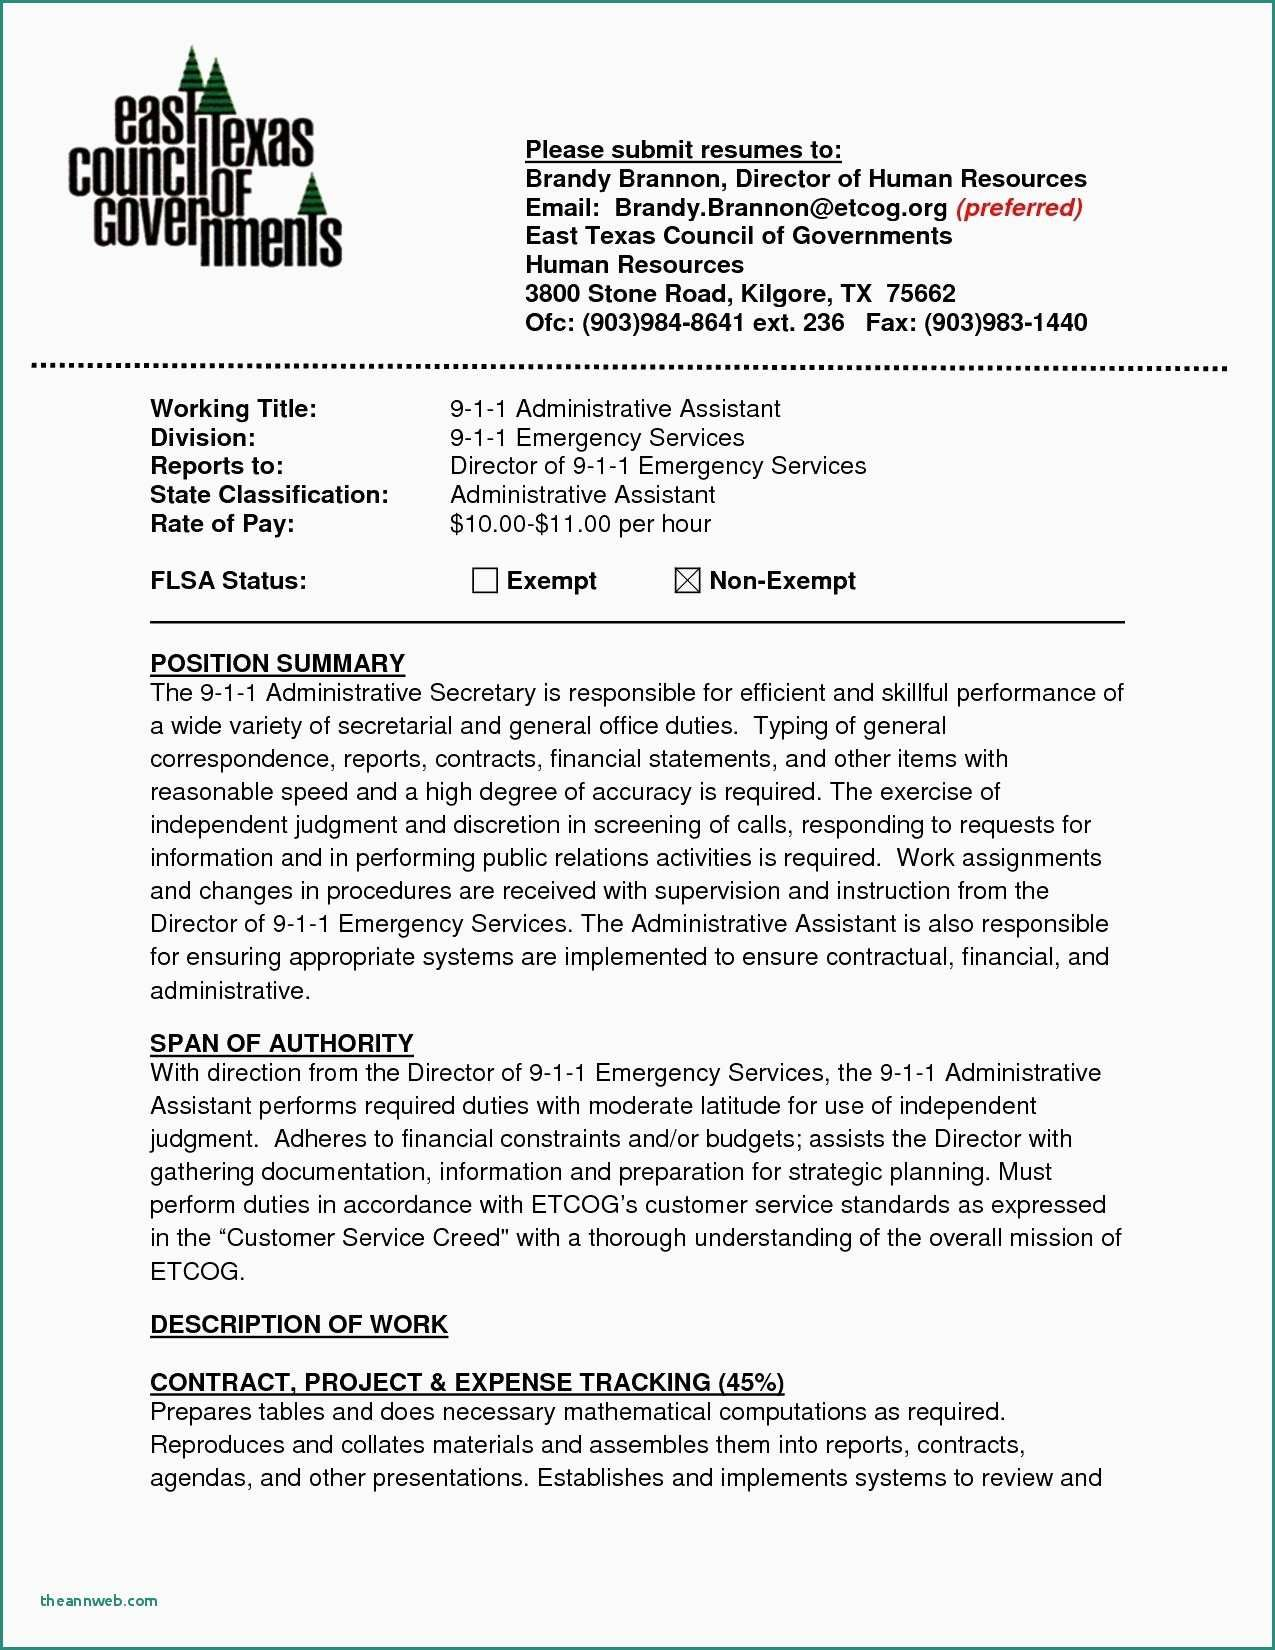 30+ administrative assistant cover letter in 2020 sample resume for hrm undergraduate word file download nursing duties